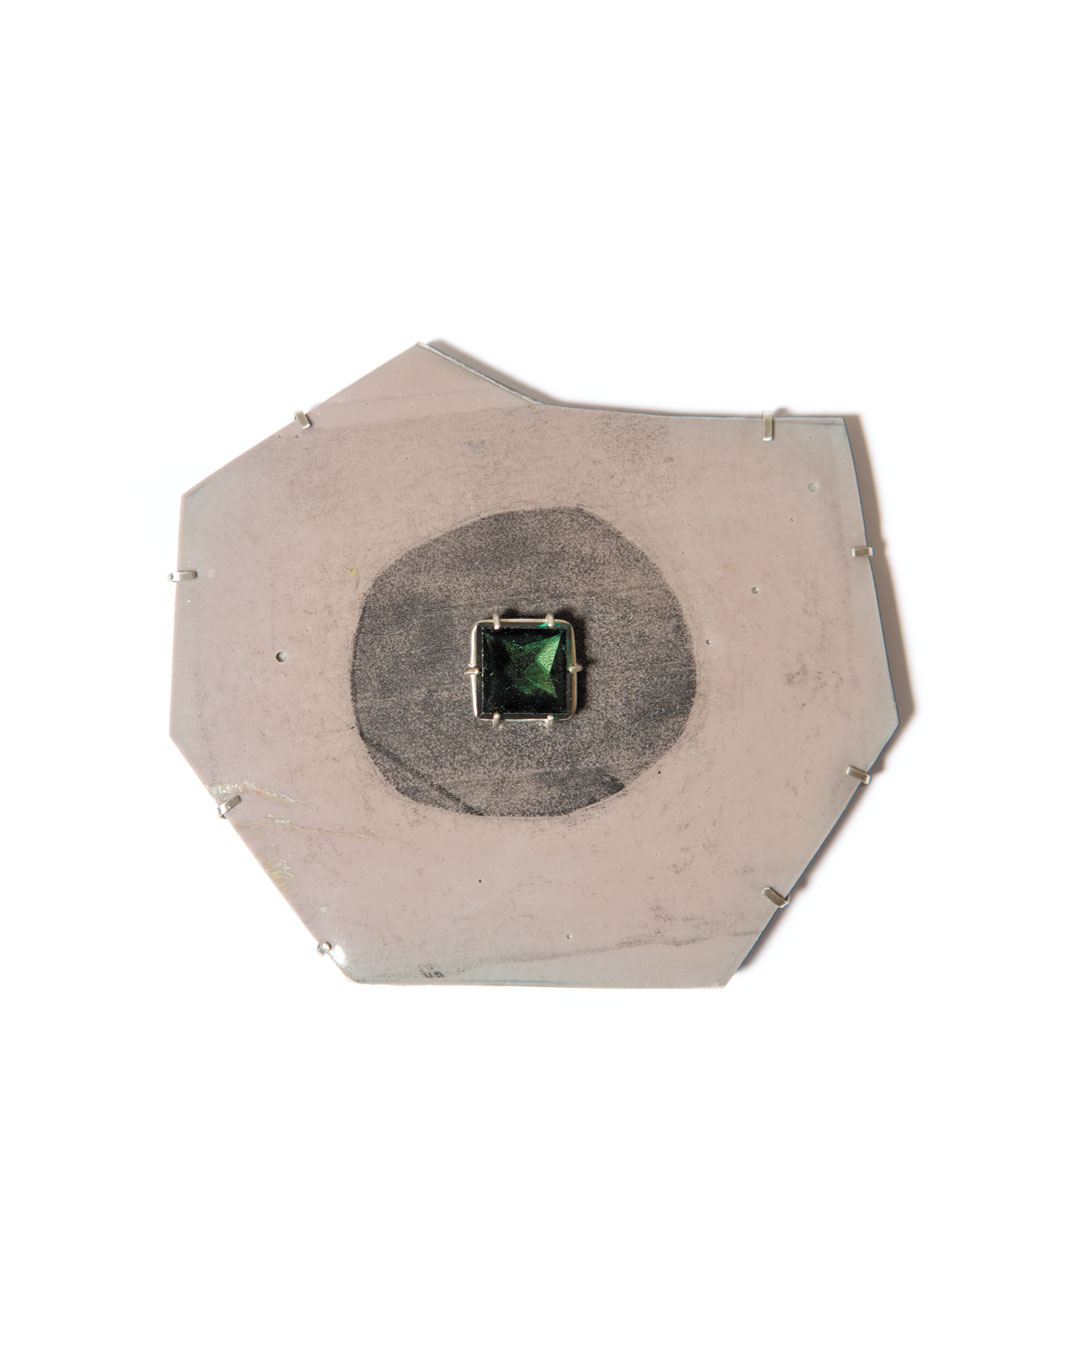 Margit Jäschke, untitled, 2013, brooch; Kapa foam board, epoxy, silver, synthetic stone, 112 x 98 x 12 mm, €1460